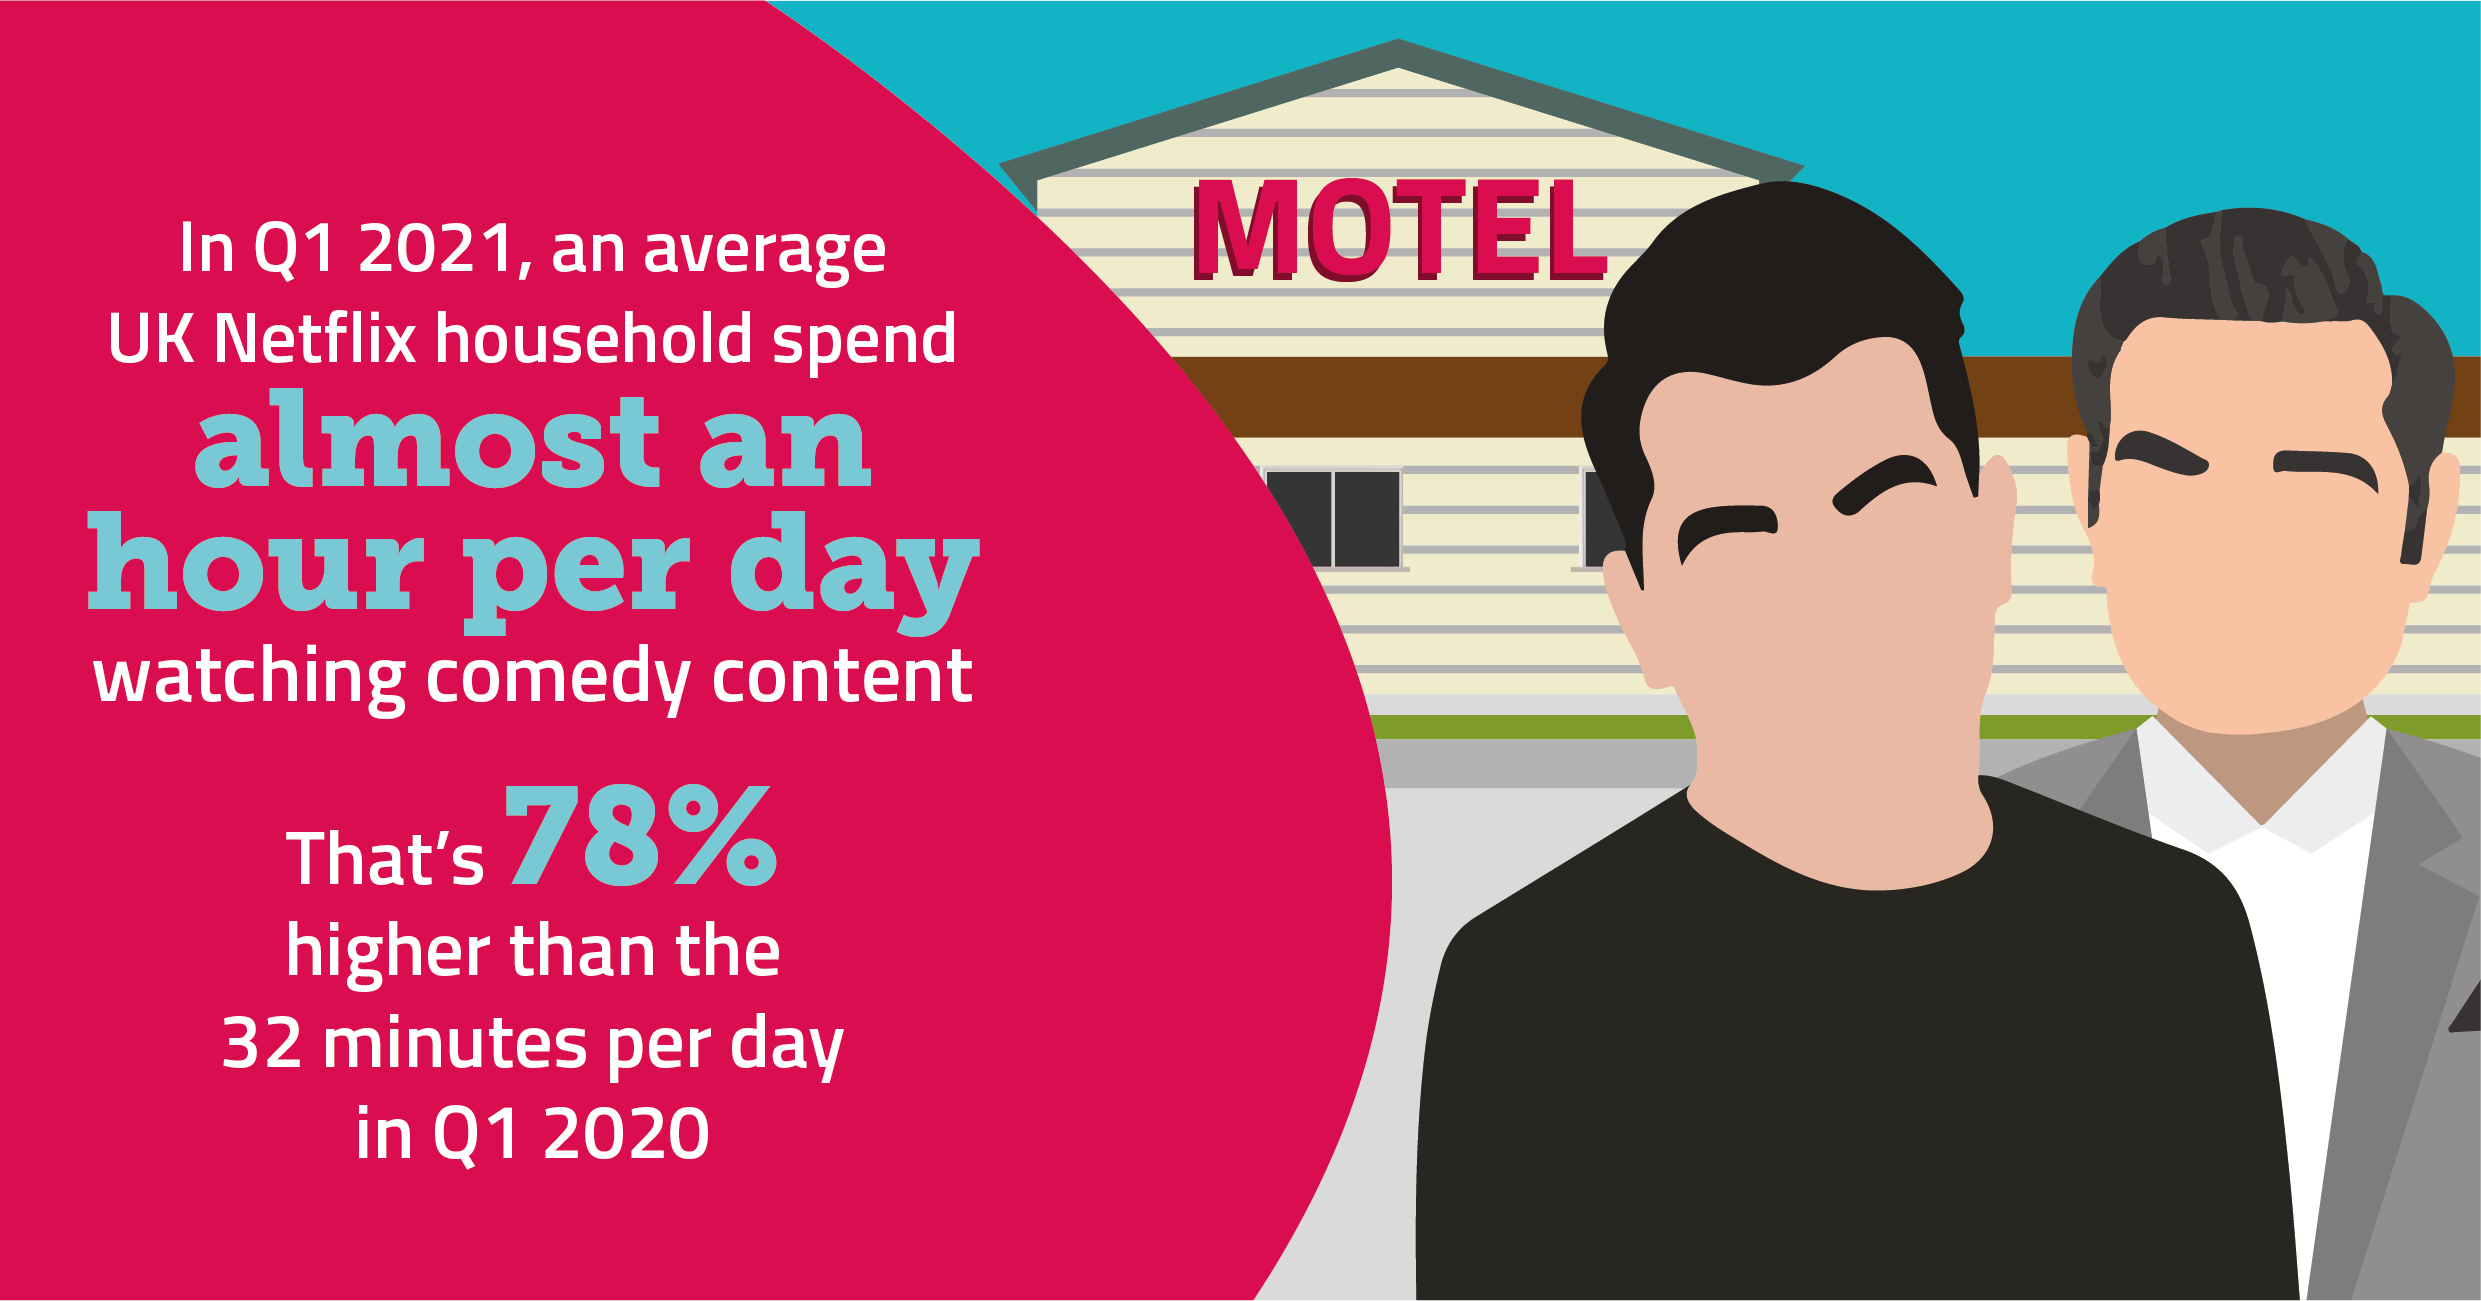 In Q1 2021, an average UK Netflix household spend almost an hour a day watching comedy content. That's 78% higher than the 32 minutes per day in Q1 2020.